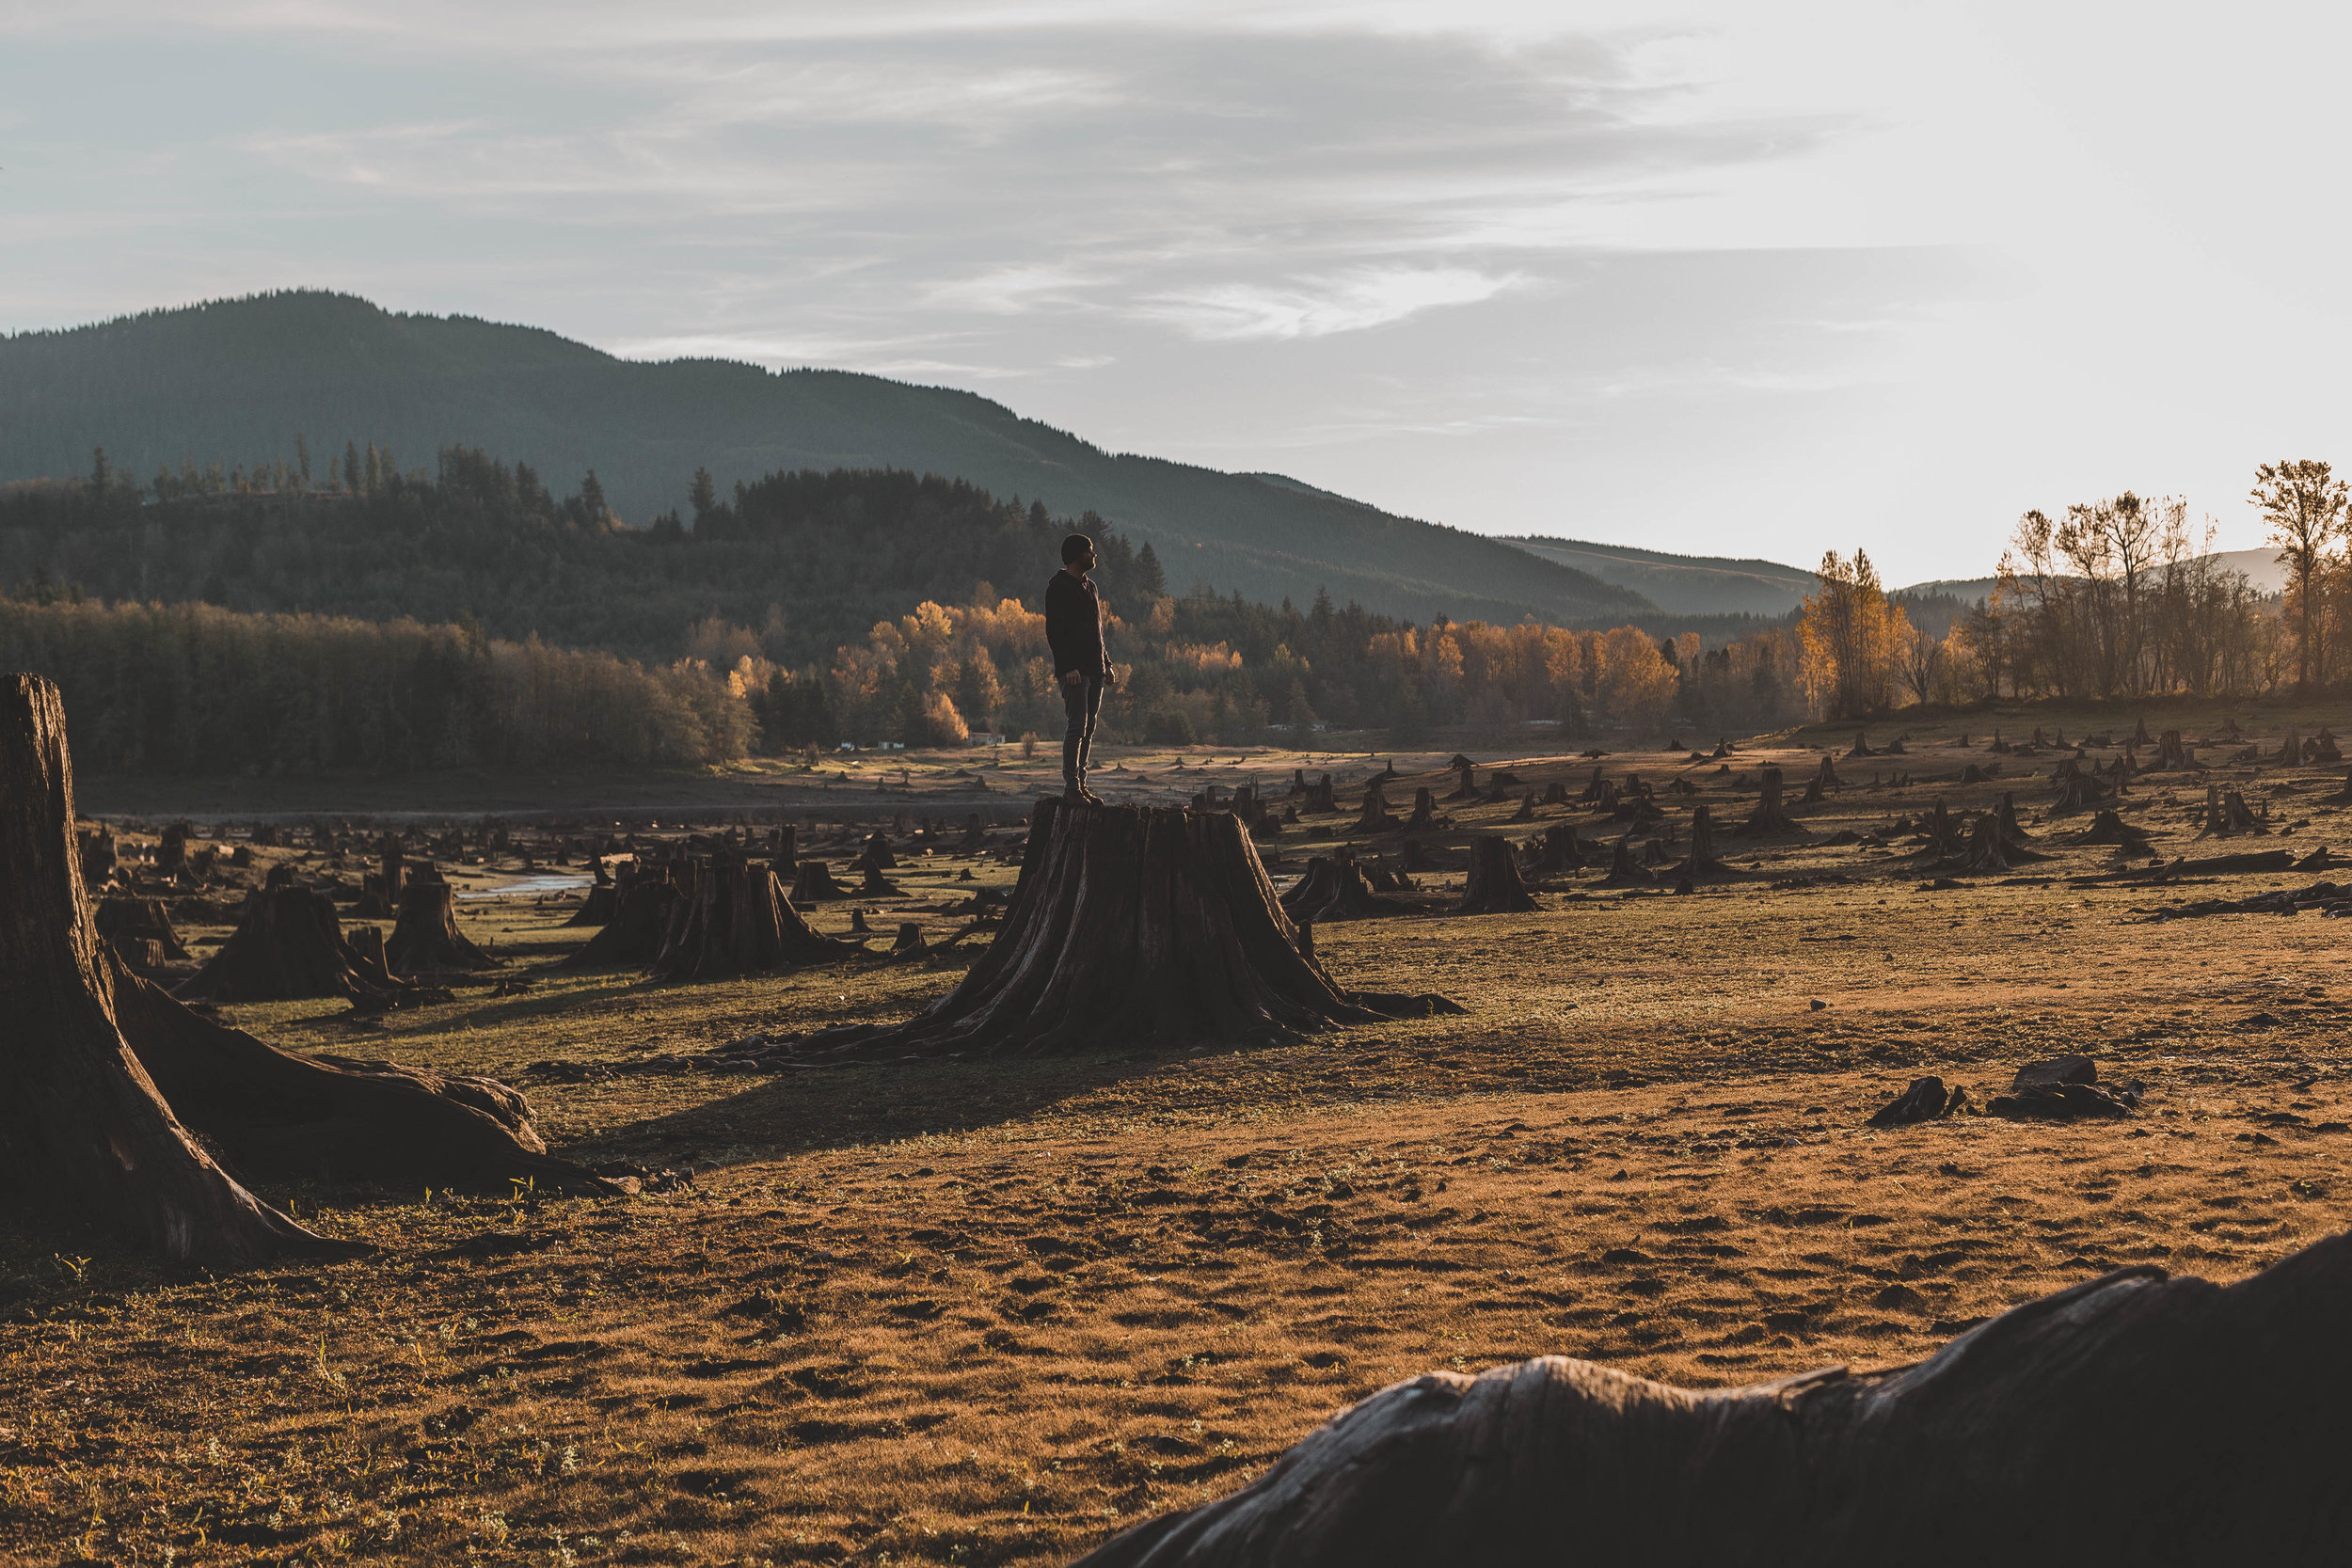 A man stands amidst an empty field with felled trees. Credit: Dave Herring/Unsplash